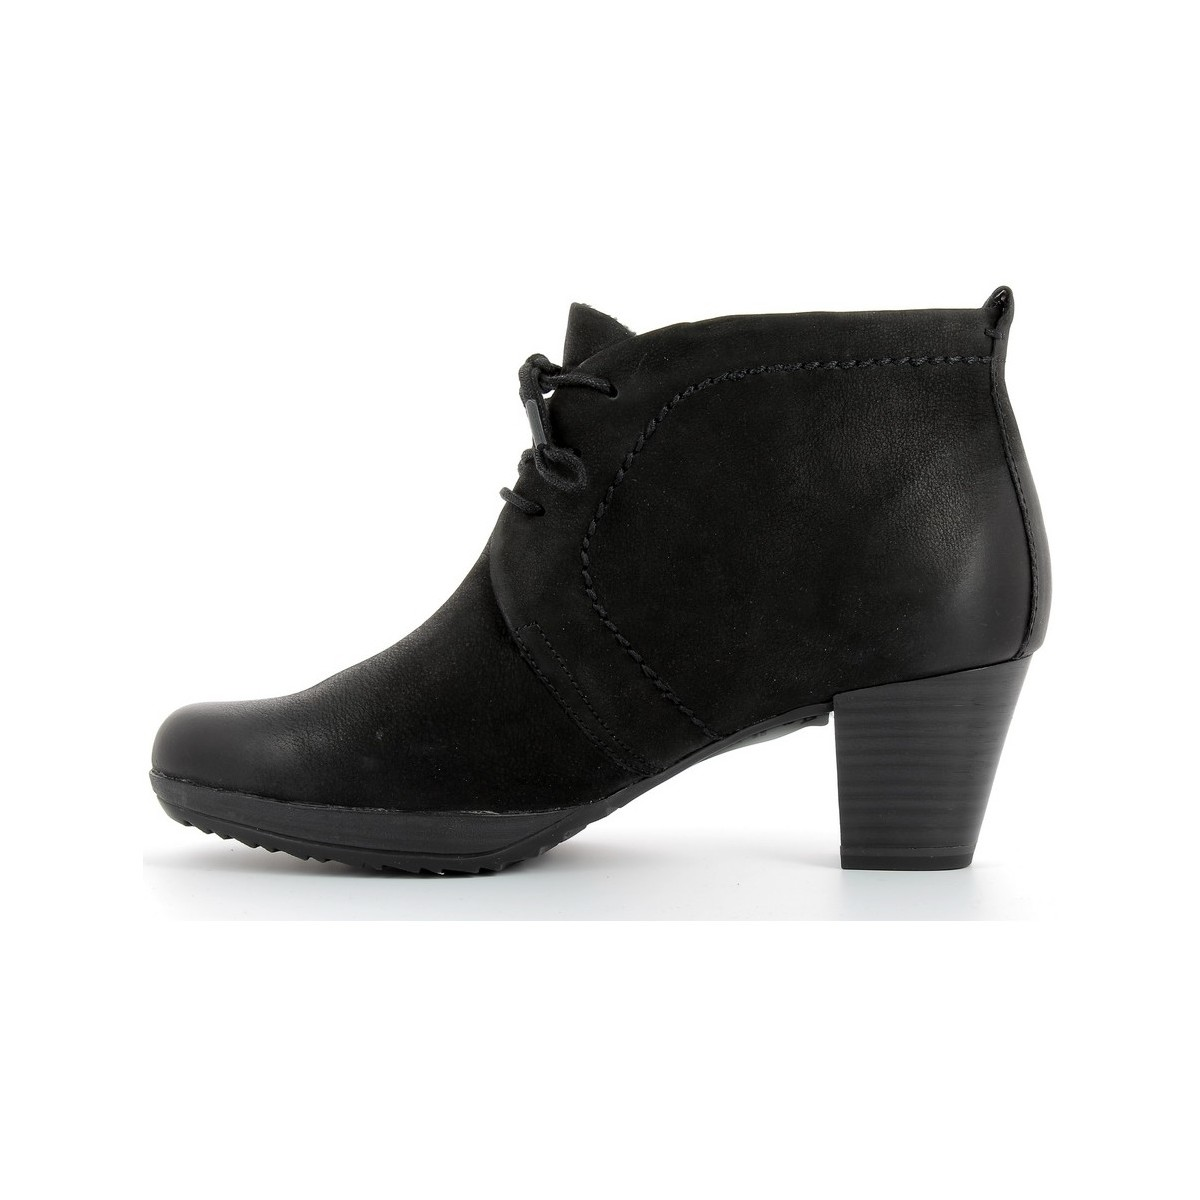 Marco Tozzi Bottines en cuir femmes  - 25106-27 Black antic